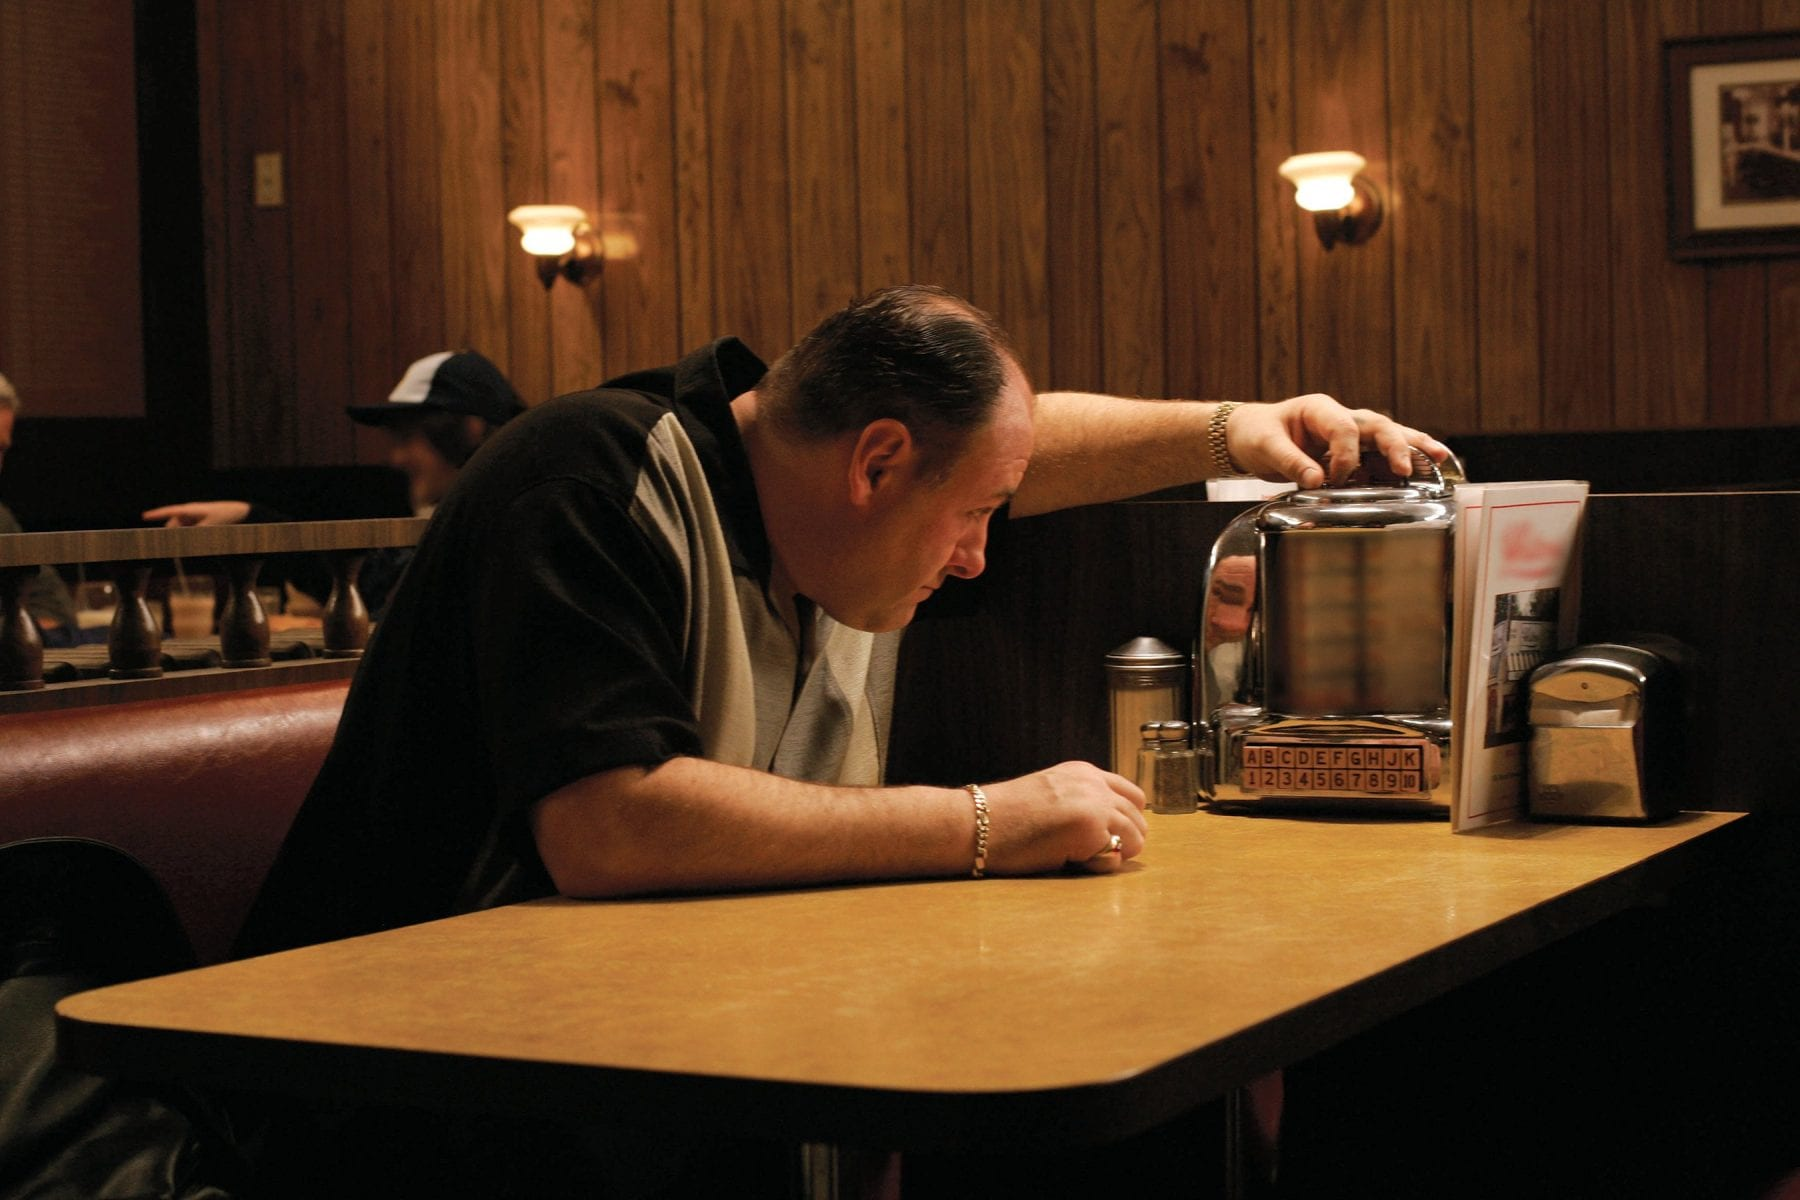 Tony Soprano (James Gandolfini) dials up some Journey in the finale of HBO